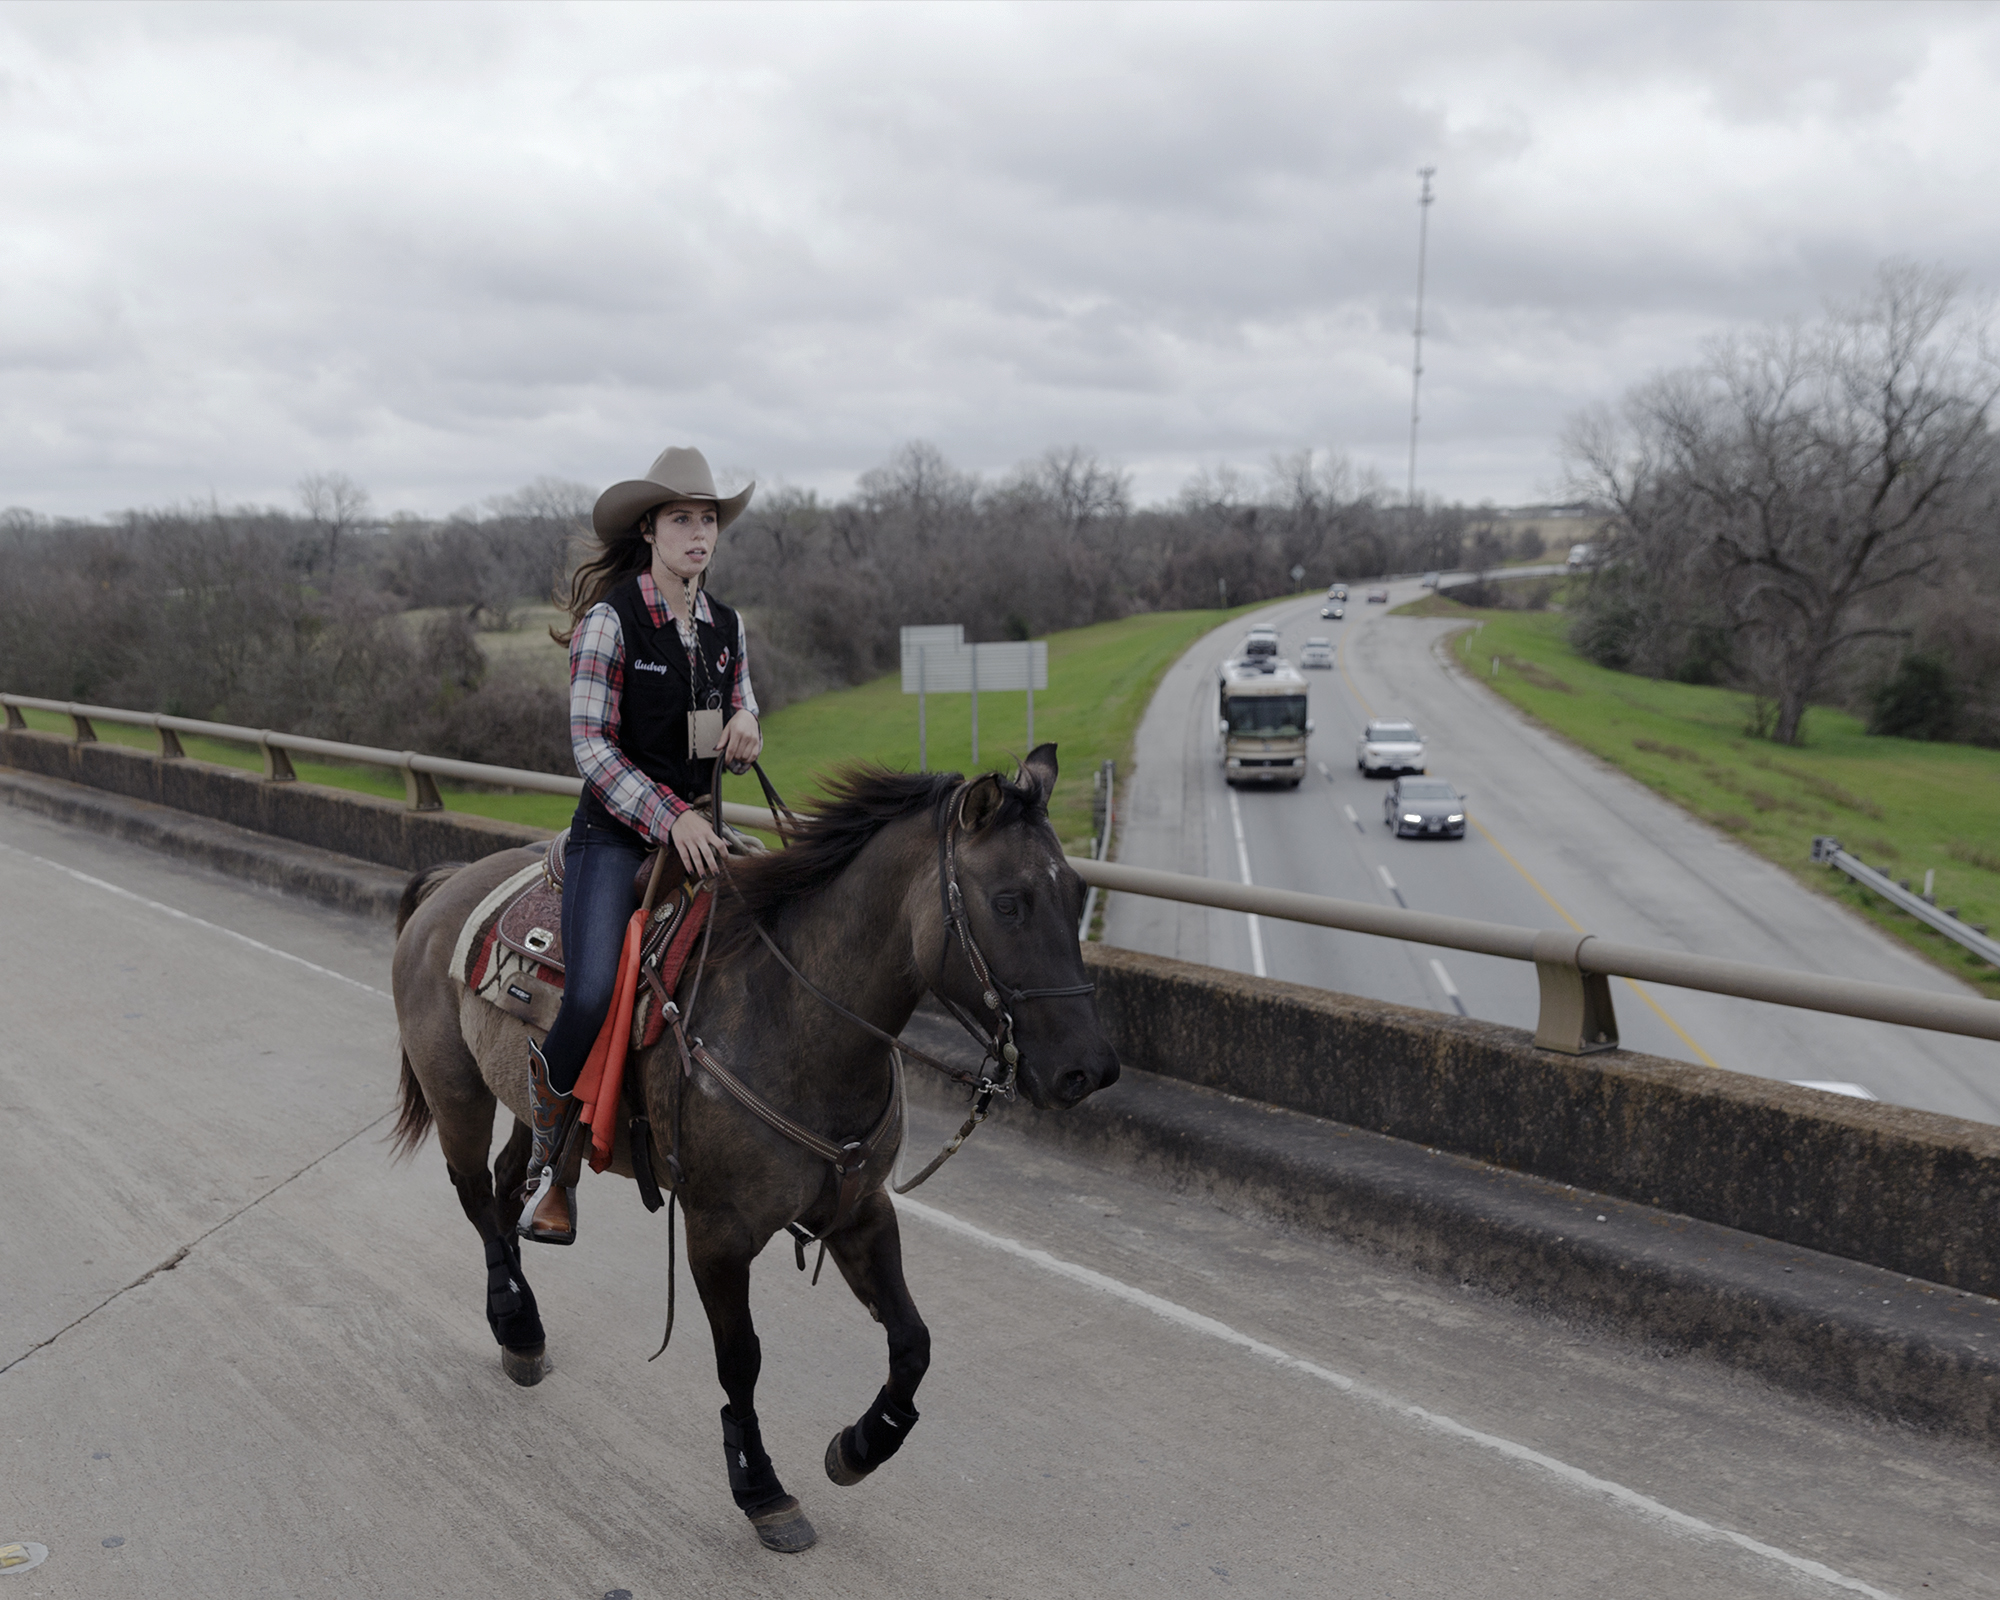 A member of the Valley Lodge Trail Ride crosses over a highway overpass. In many ways, Fulshear is at an intersection of what was, is, and can be.